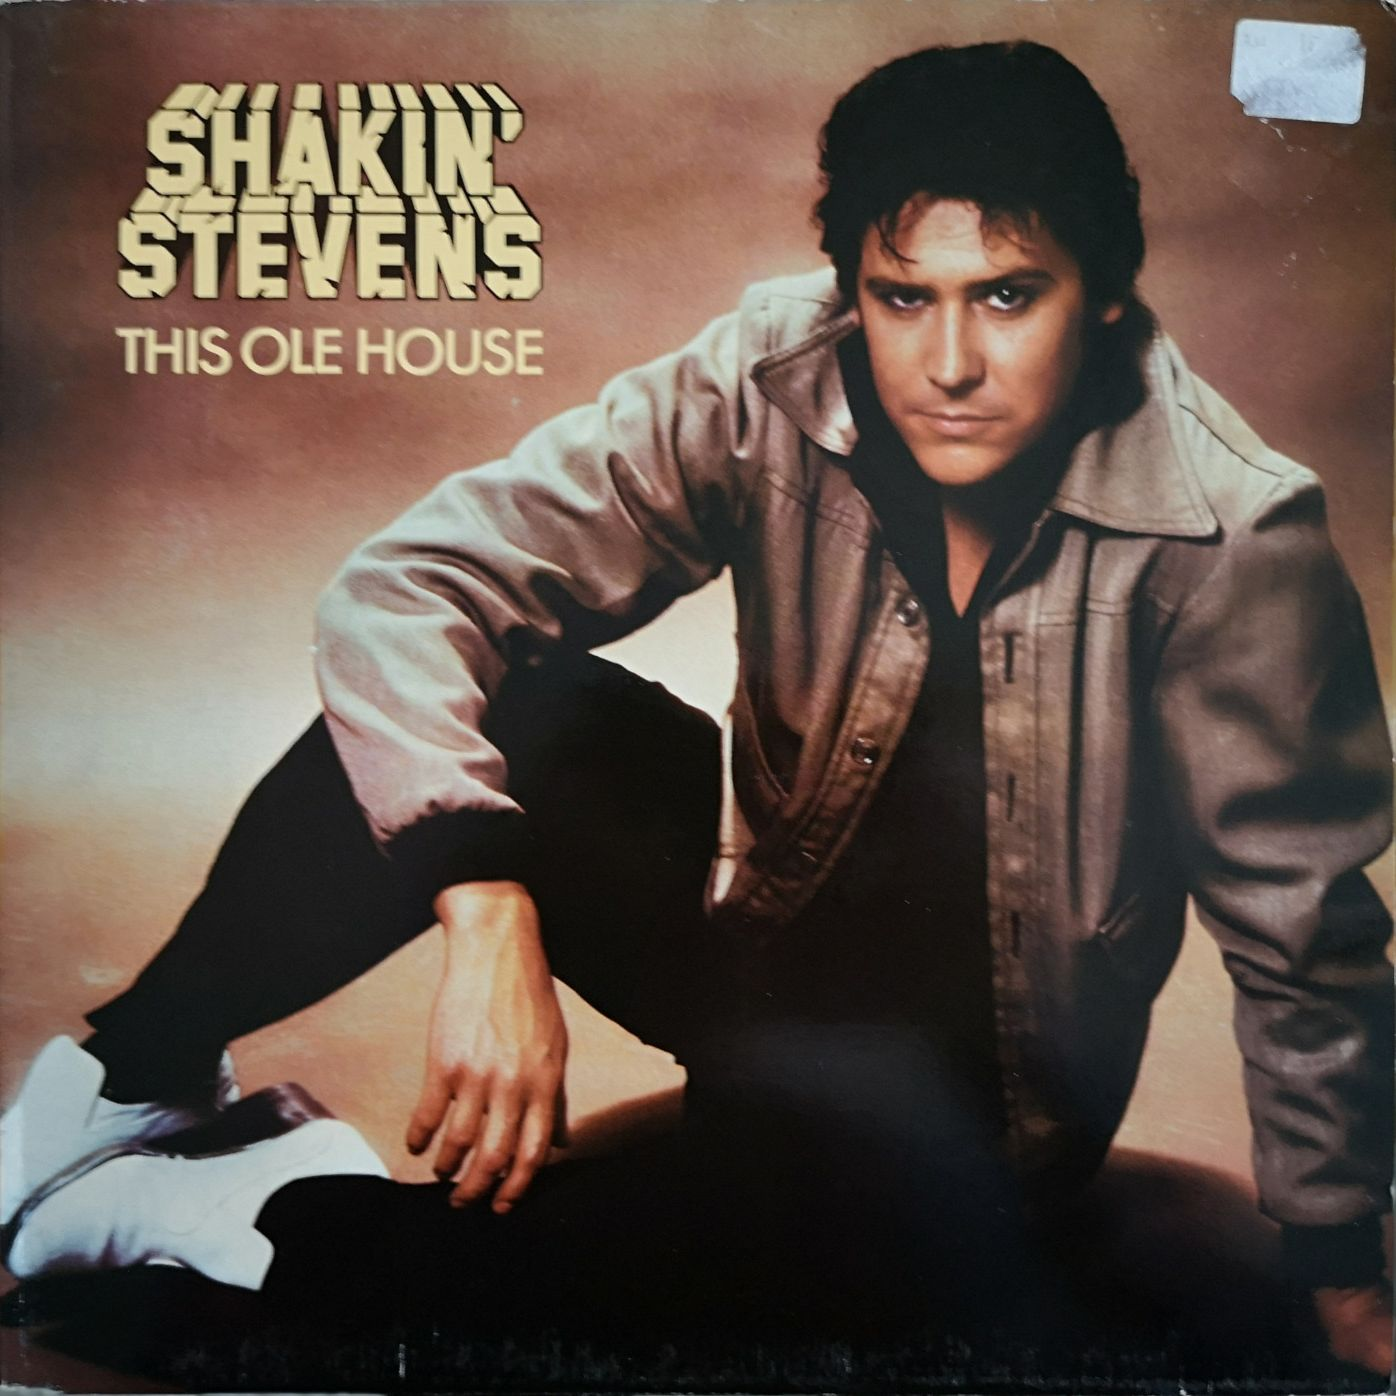 Shakin' Stevens This Ole House LP undefined